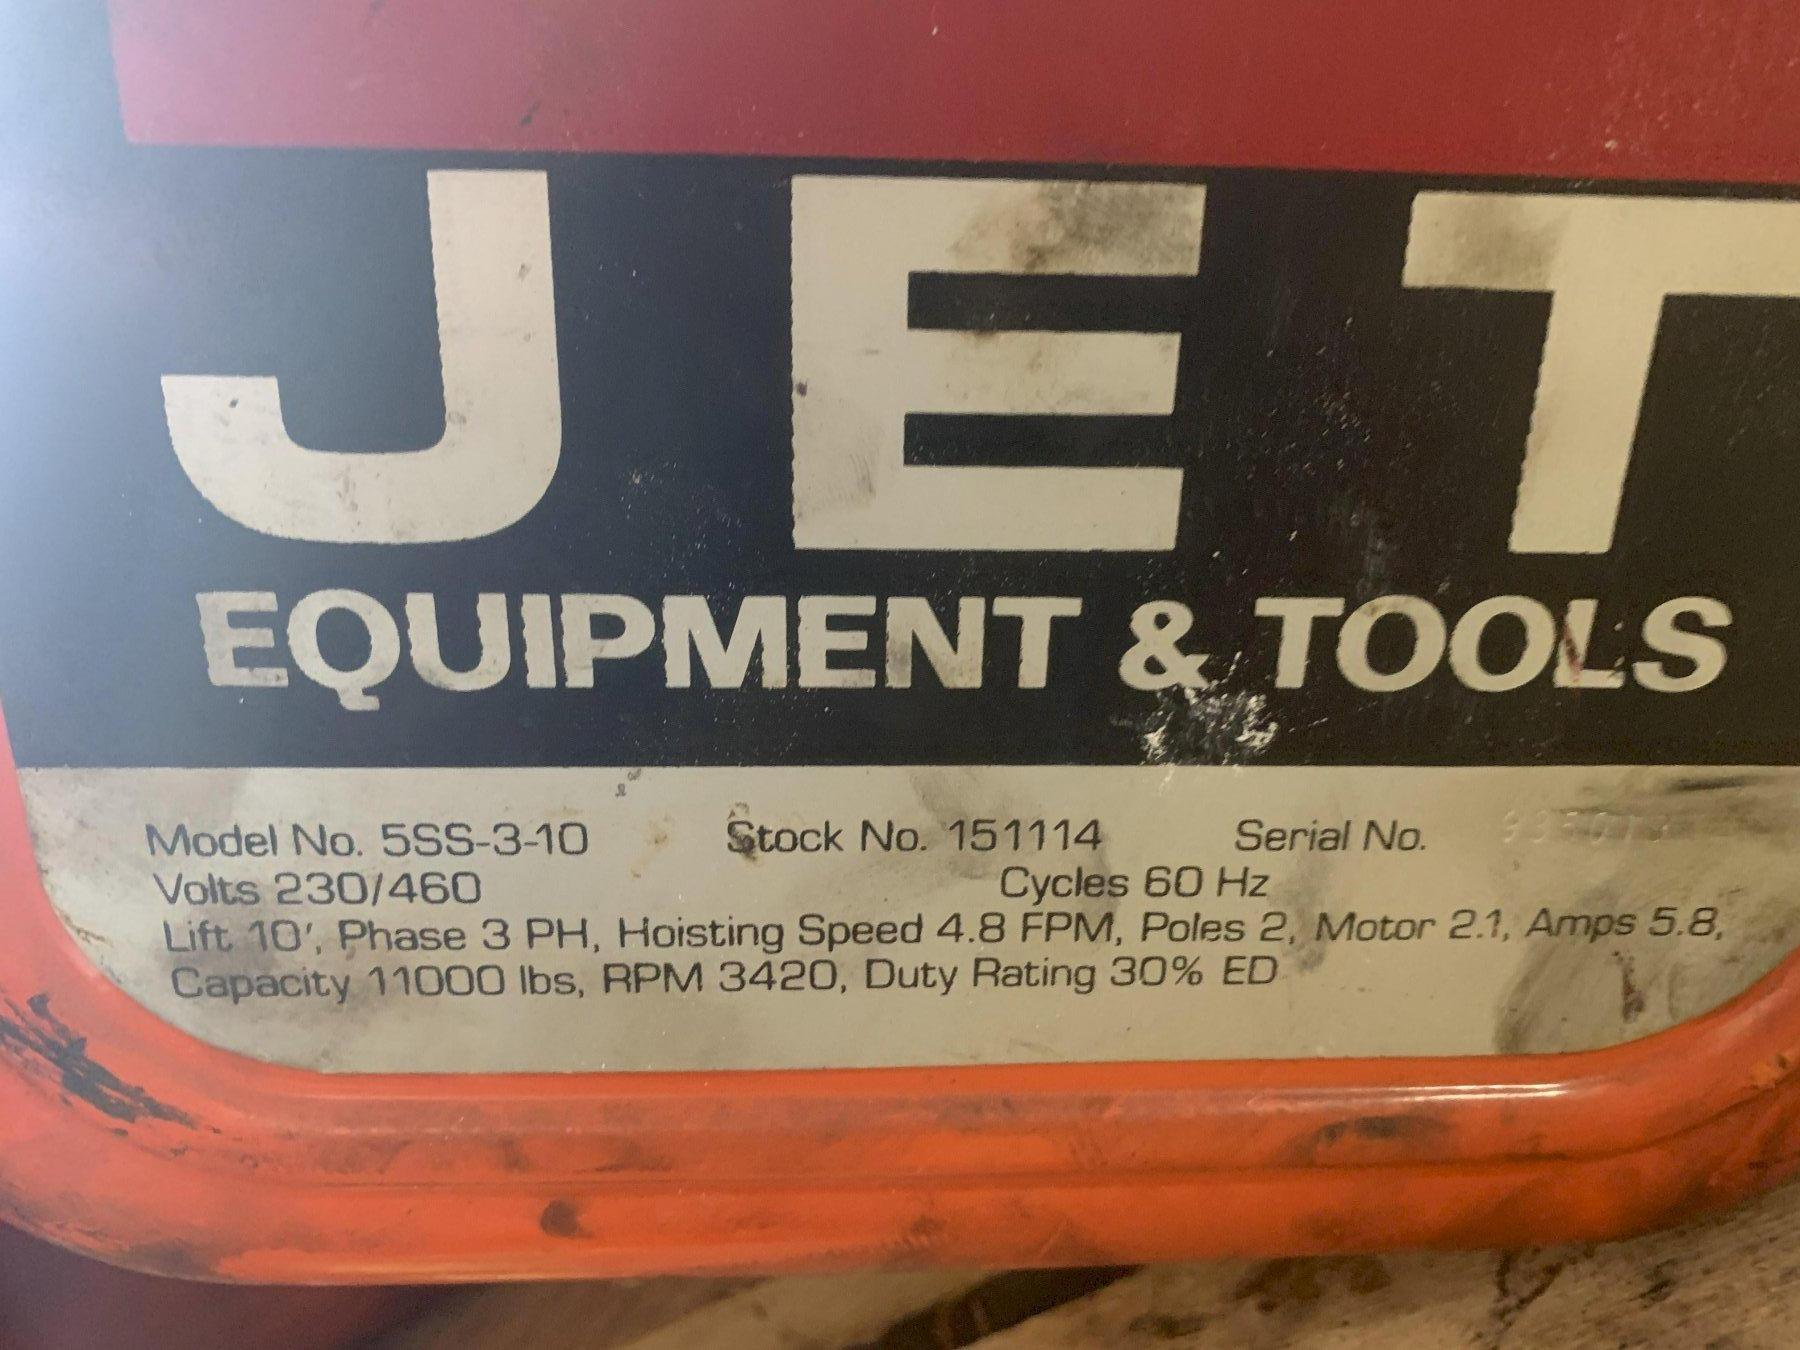 5 TON JET MODEL #5SS-3-10 CHAIN HOIST: STOCK #13775